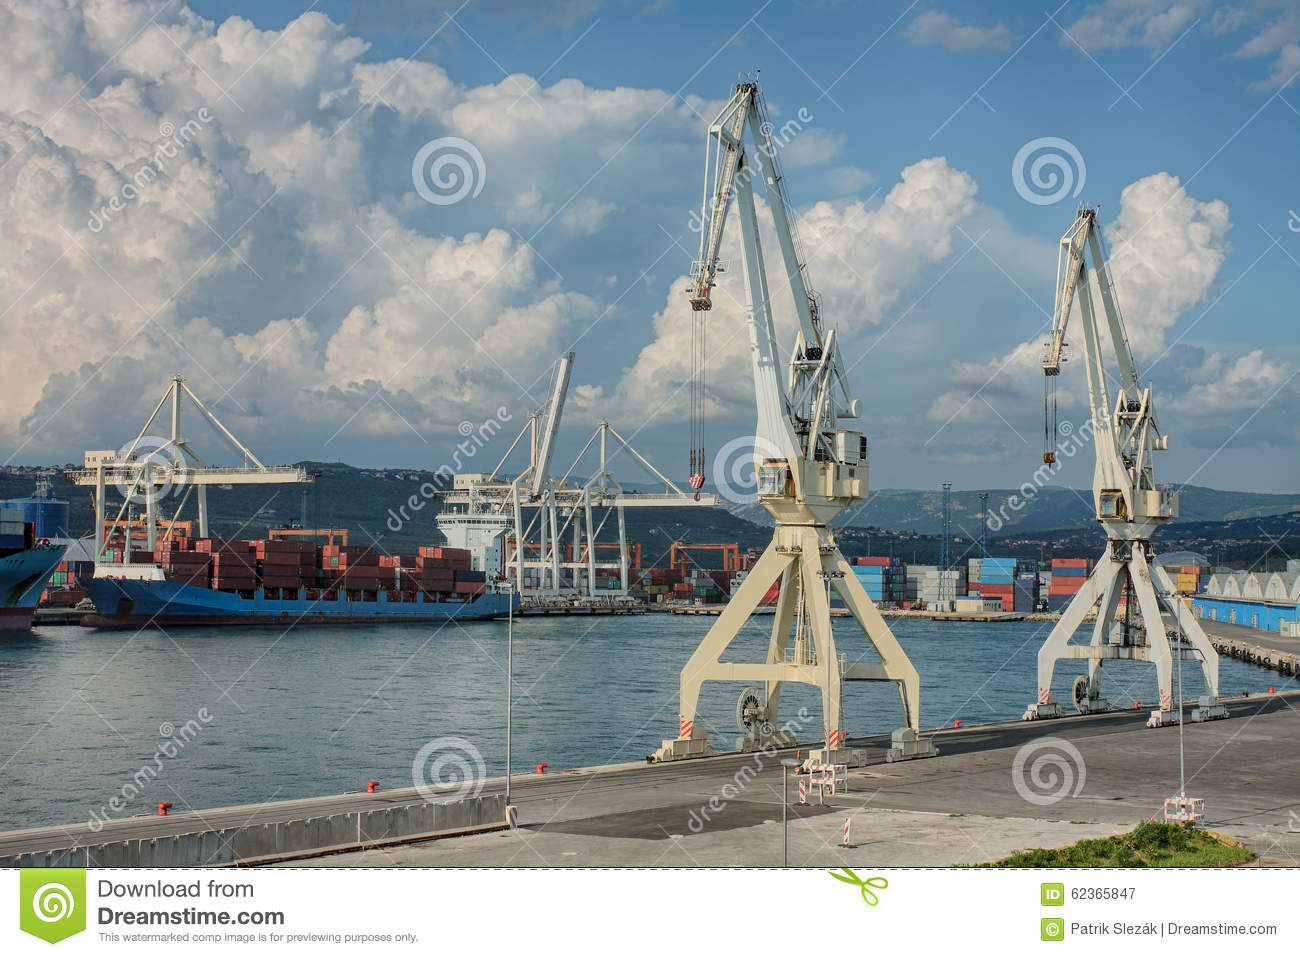 Mr White Koper Industrial Port Of Koper In Slovenia Stock Photo Image